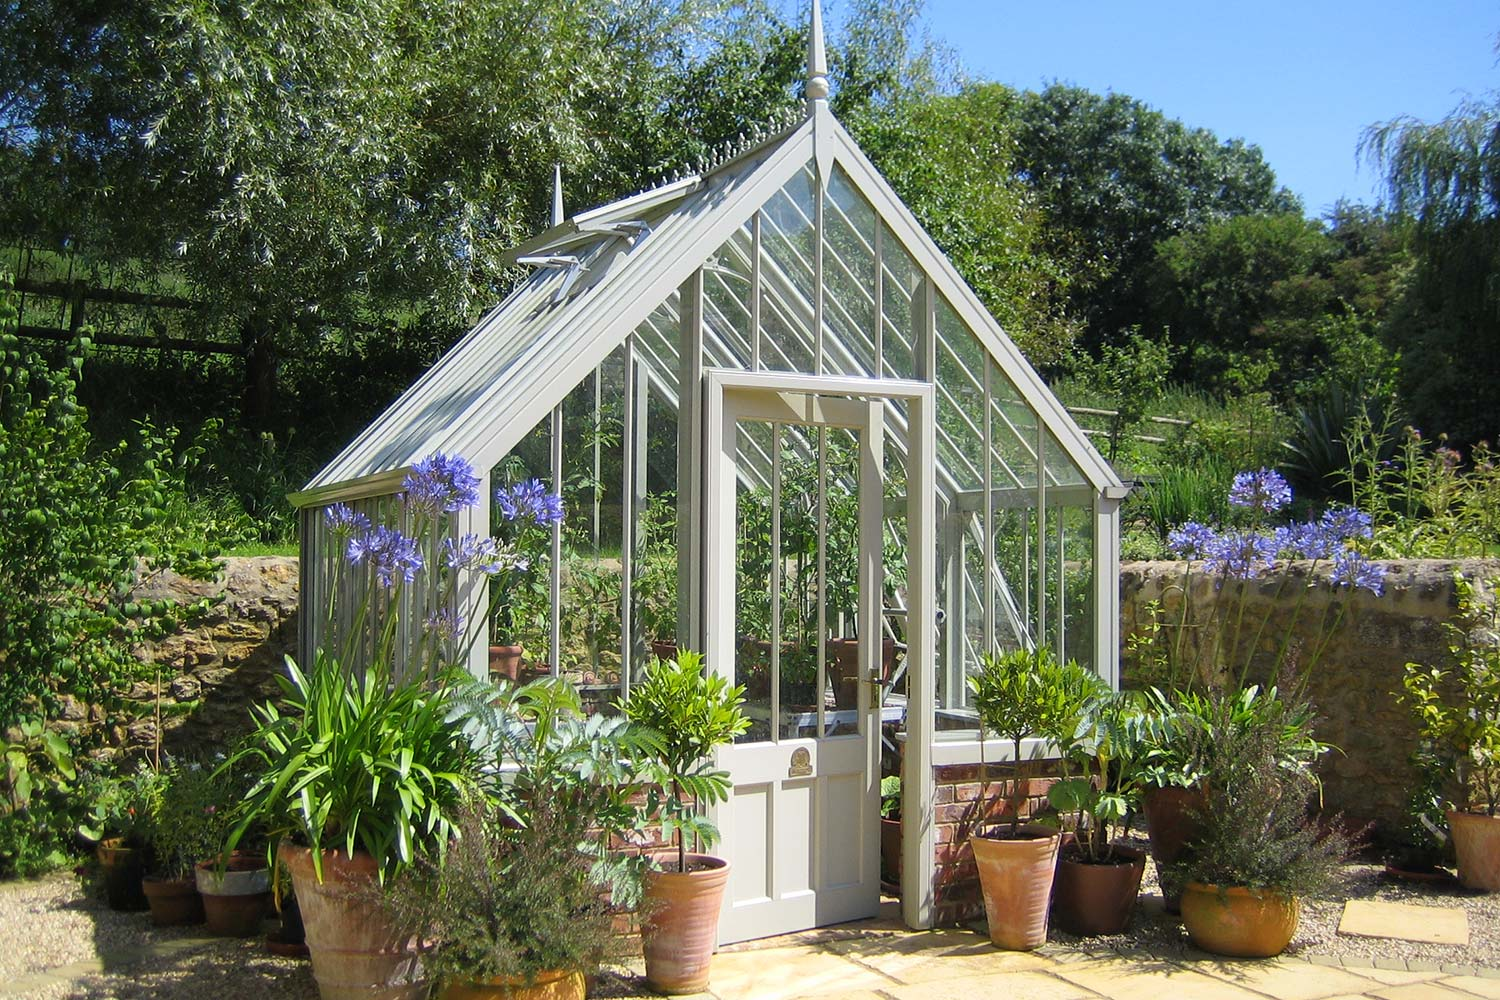 The Capel Greenhouse from the Alitex Kew Greenhouse Collection